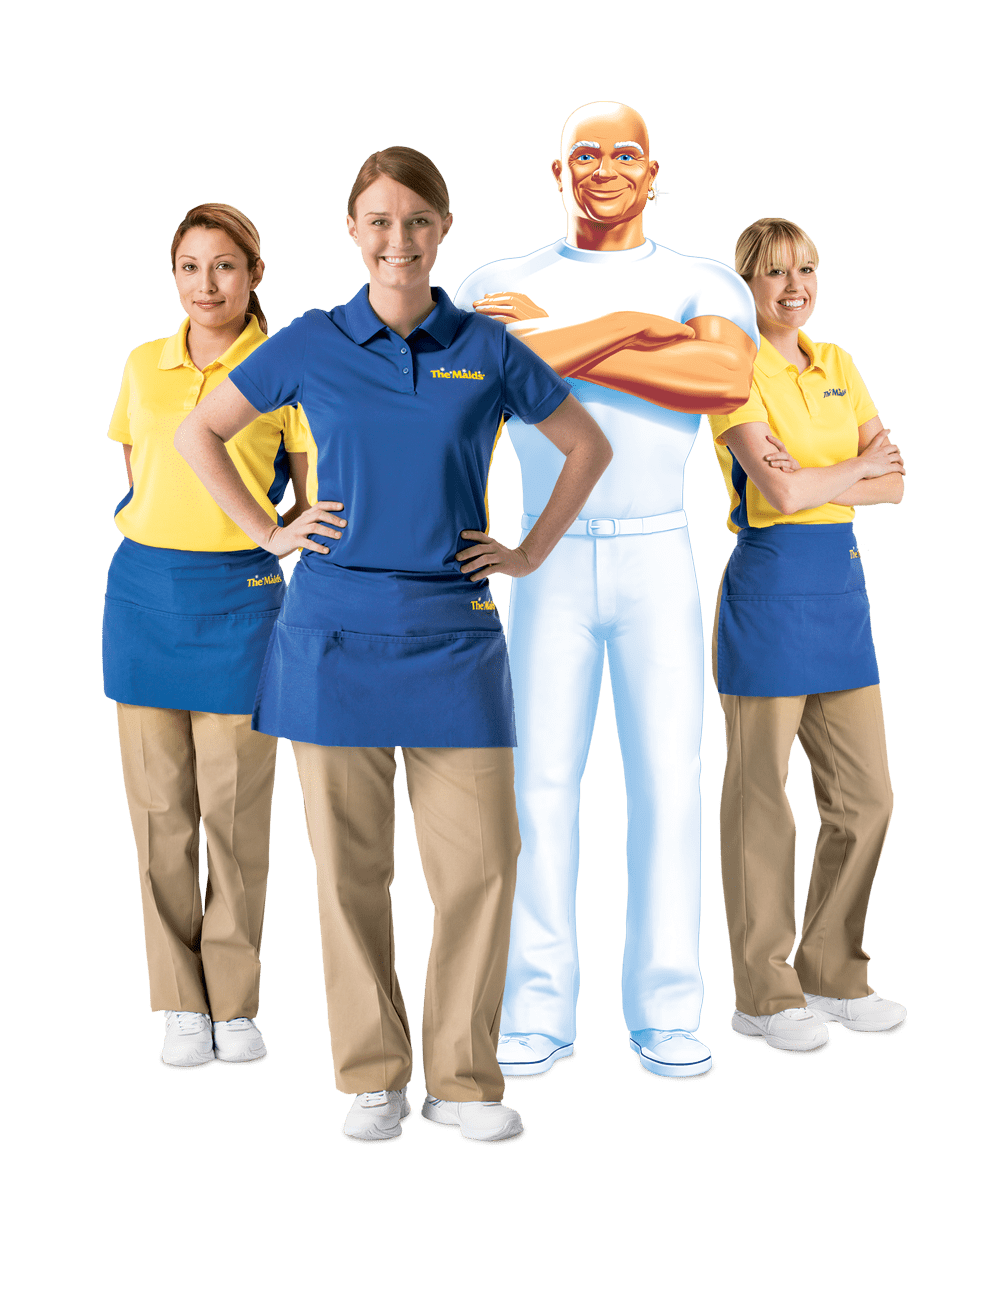 The Maids House Cleaning - The Maids in Southeastern Massachusetts Home Cleaning